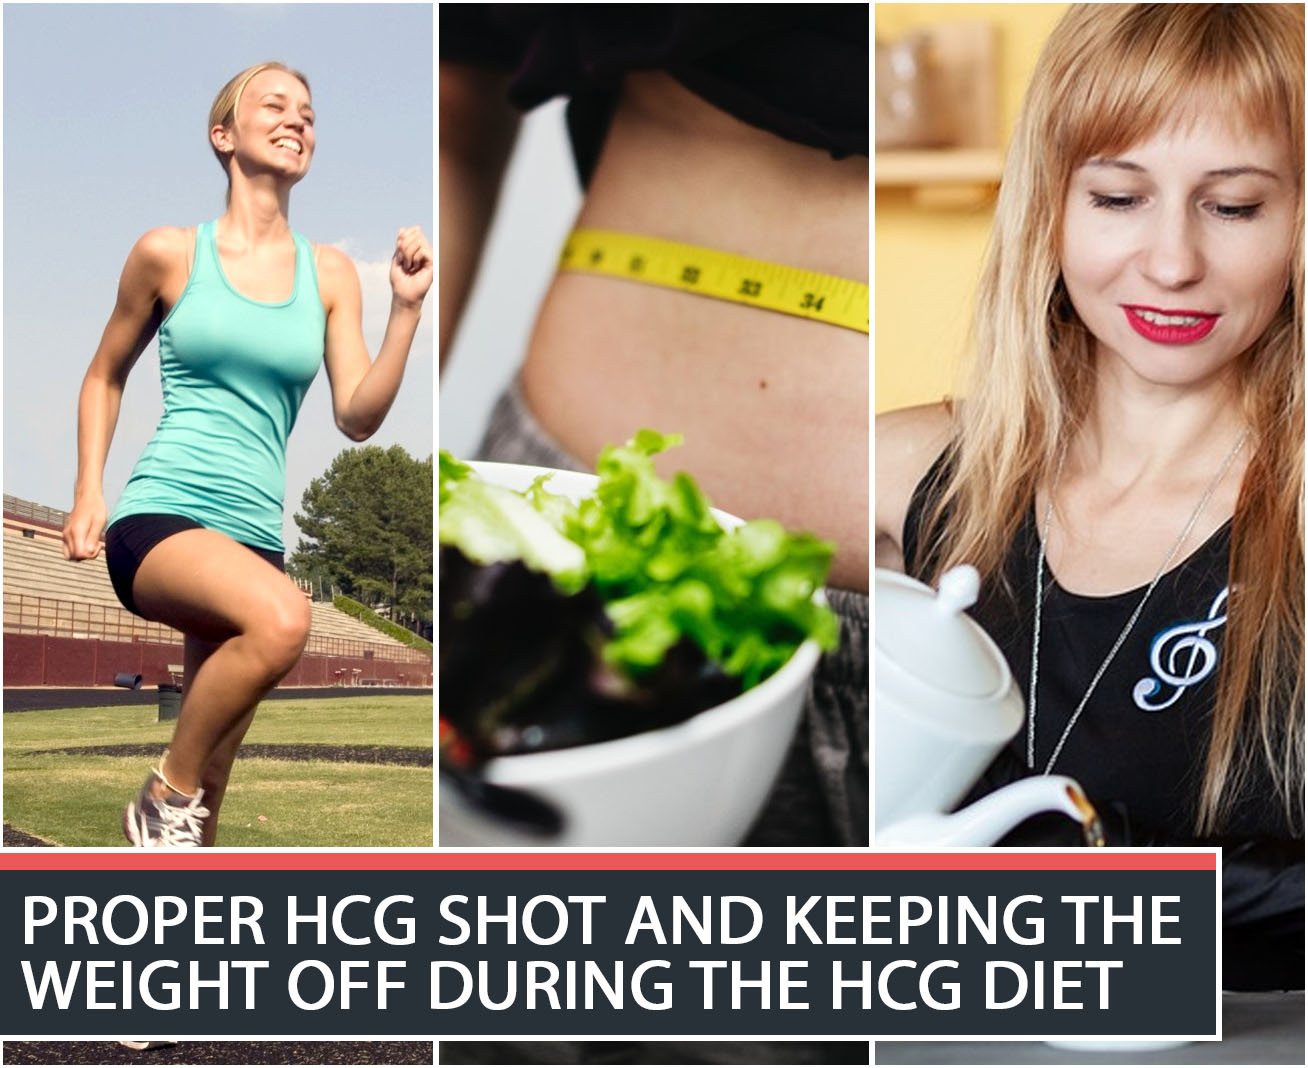 PROPER HCG SHOT AND KEEPING THE WEIGHT OFF DURING THE HCG DIET